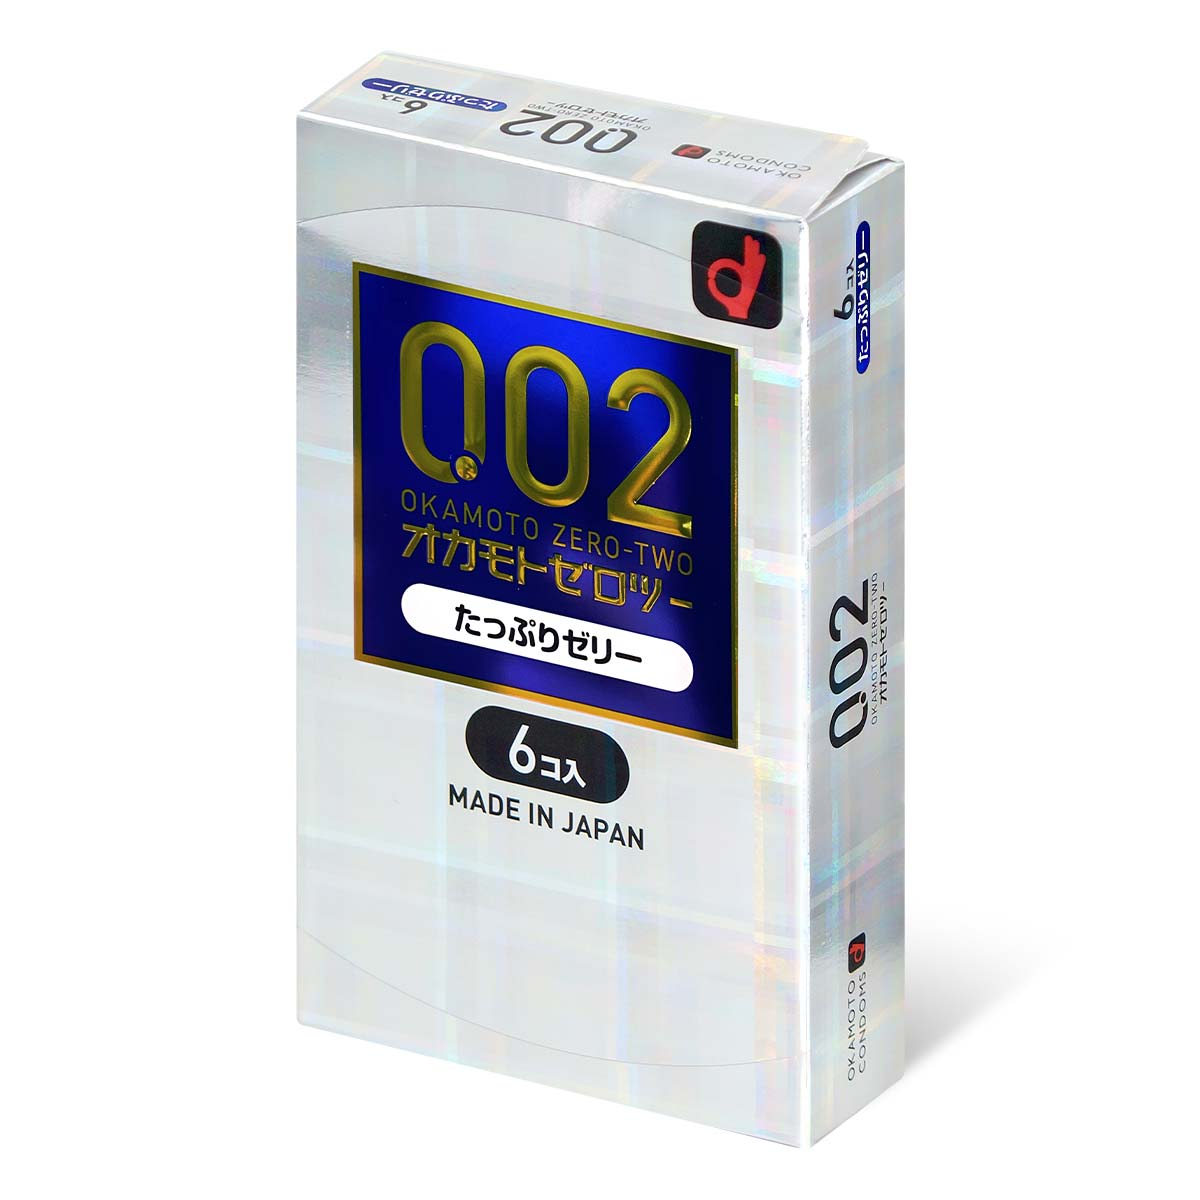 Okamoto Unified Thinness 0.02EX Plenty of Jelly (Japan Edition) 6's Pack PU Condom